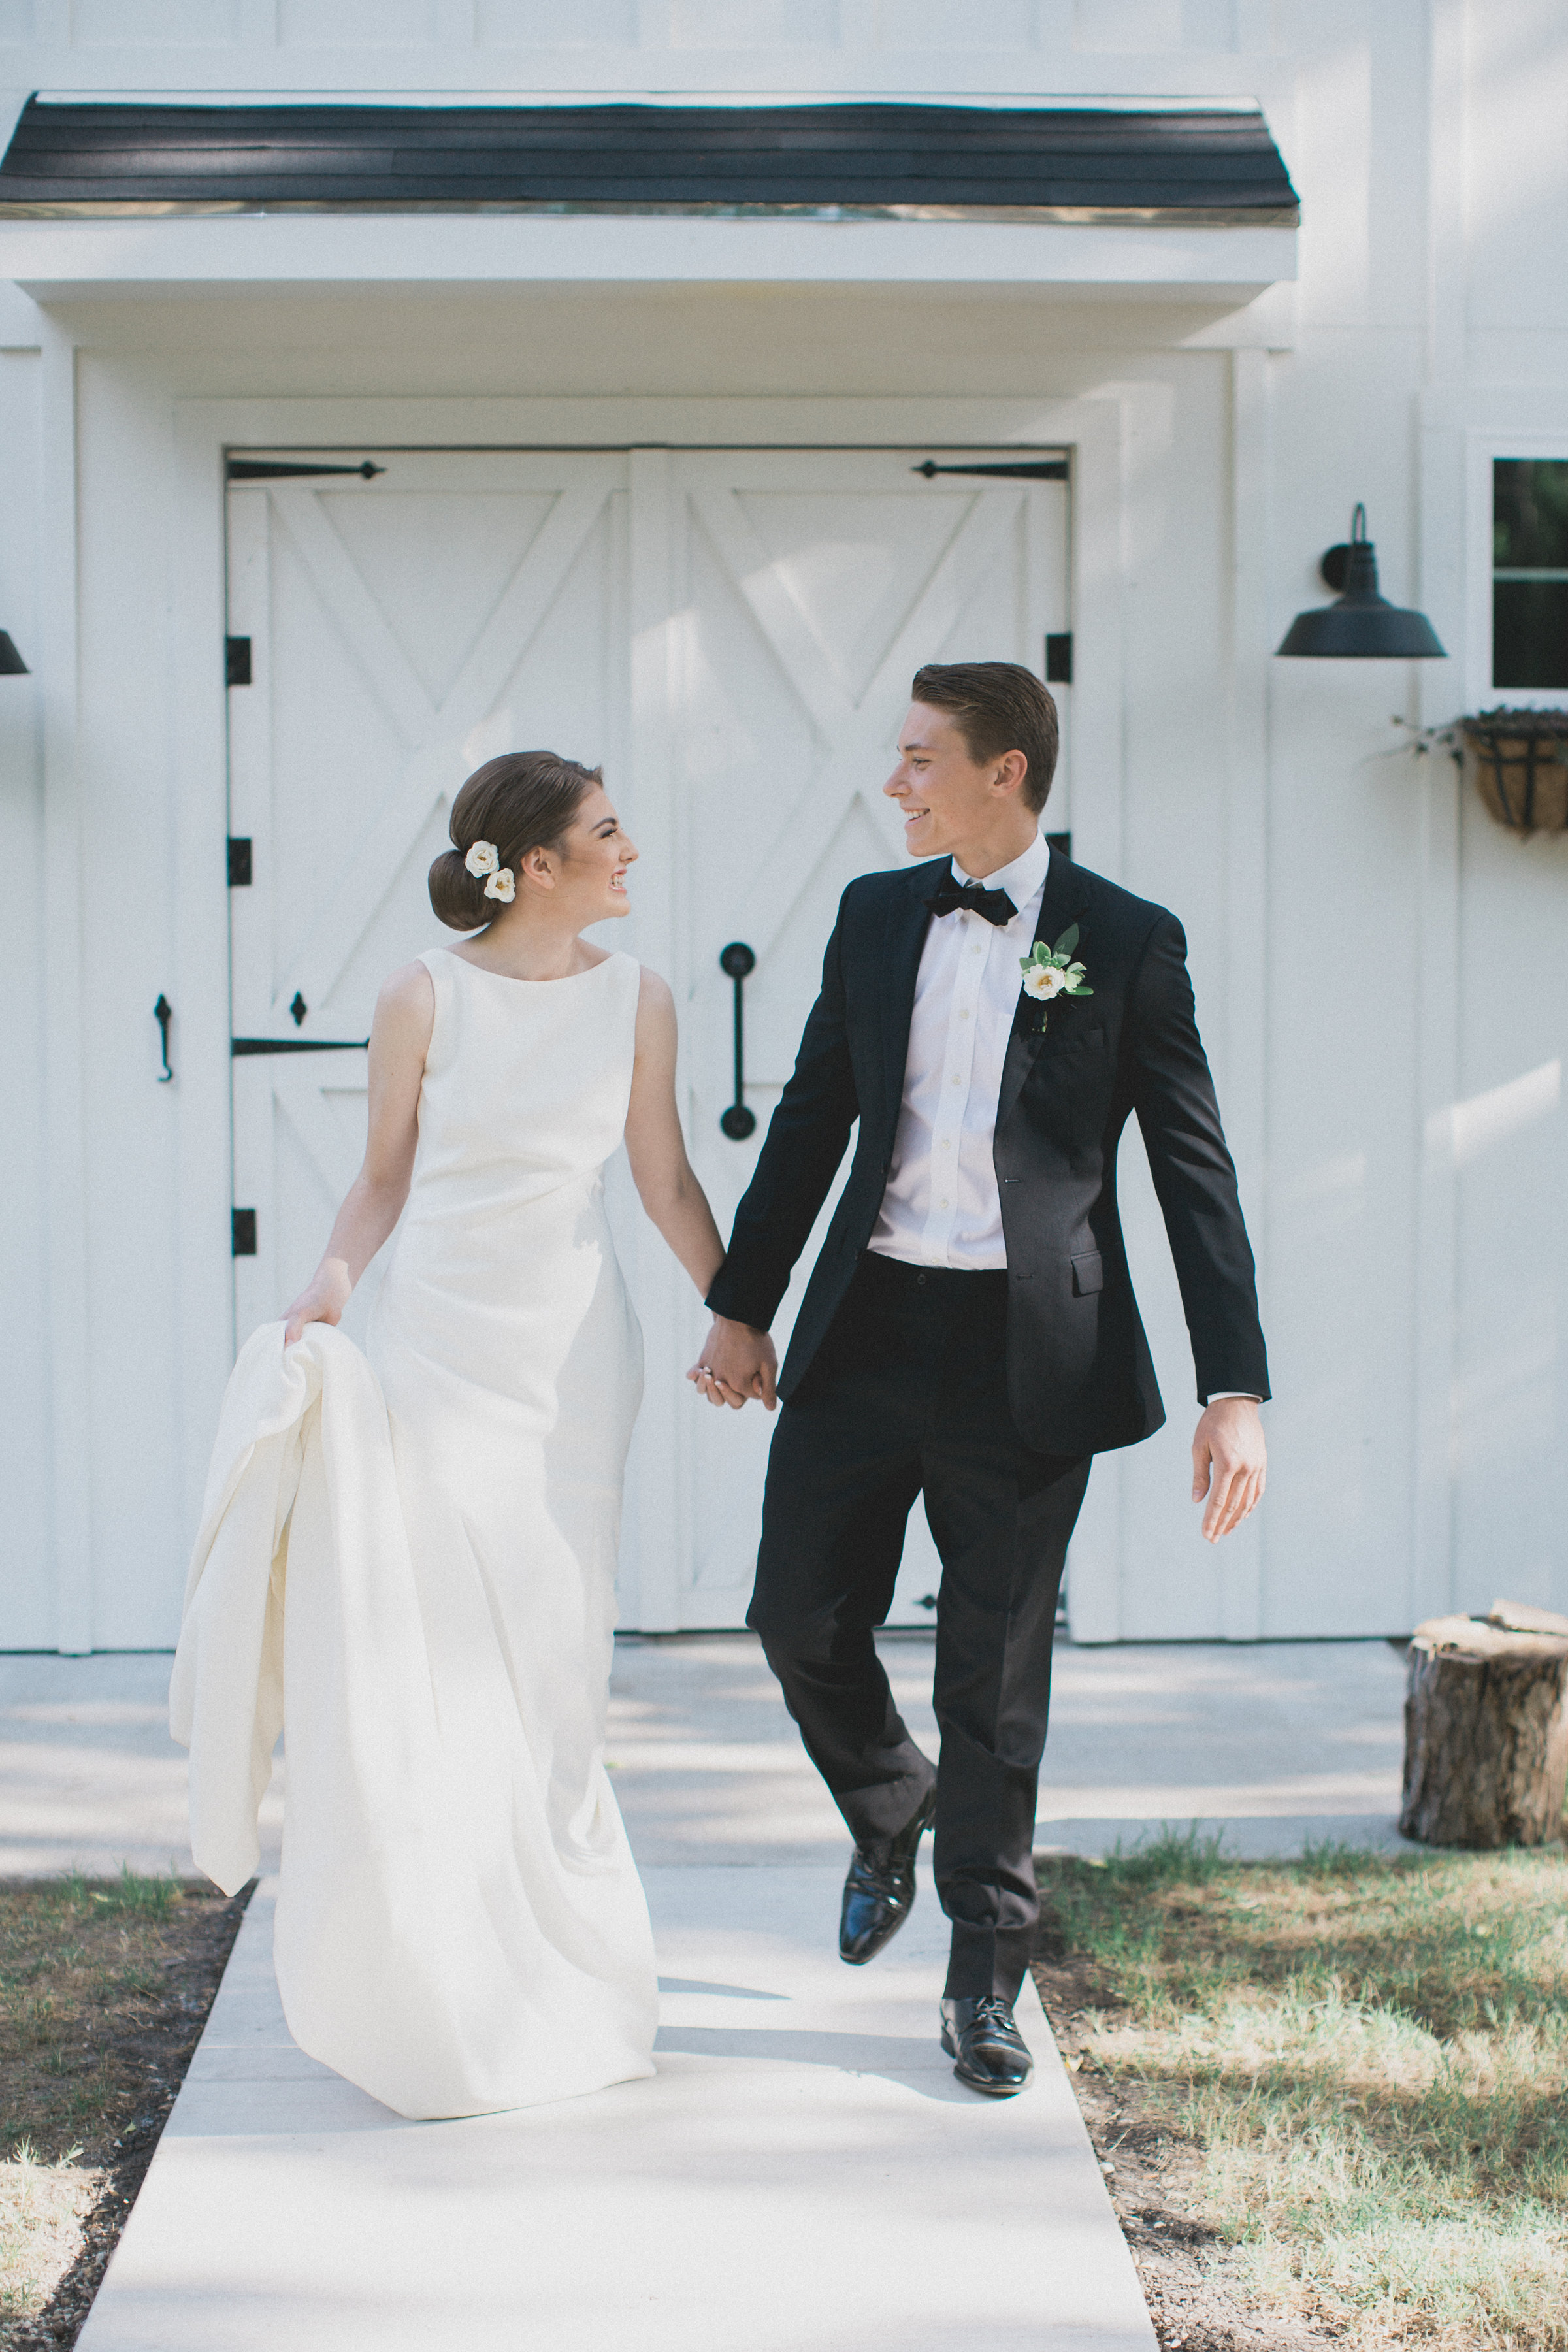 Classic Bride and Groom Wedding Looks | Southern Summer White Barn Wedding in Dallas, TX